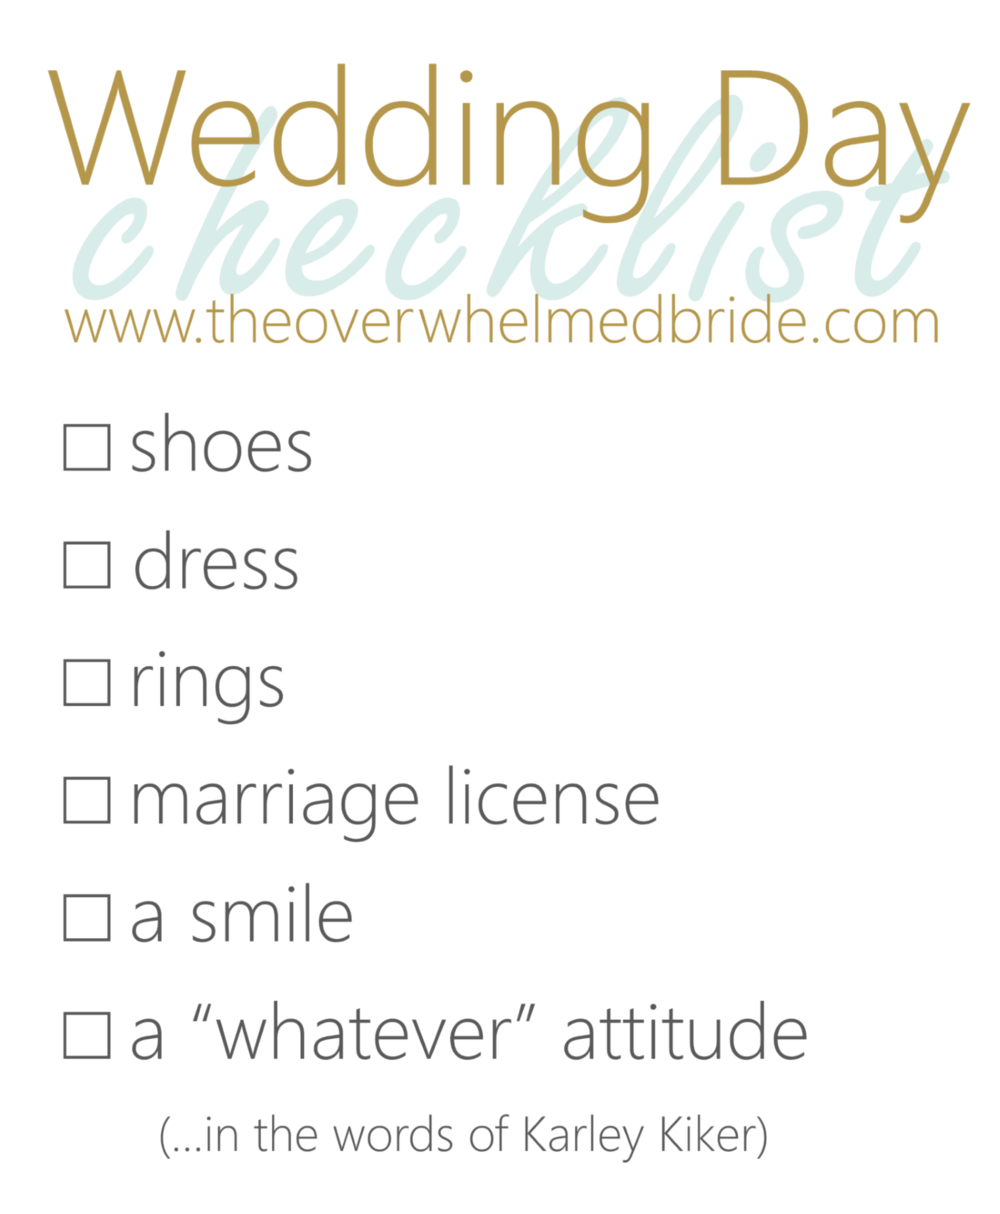 Wedding Day Checklist.png